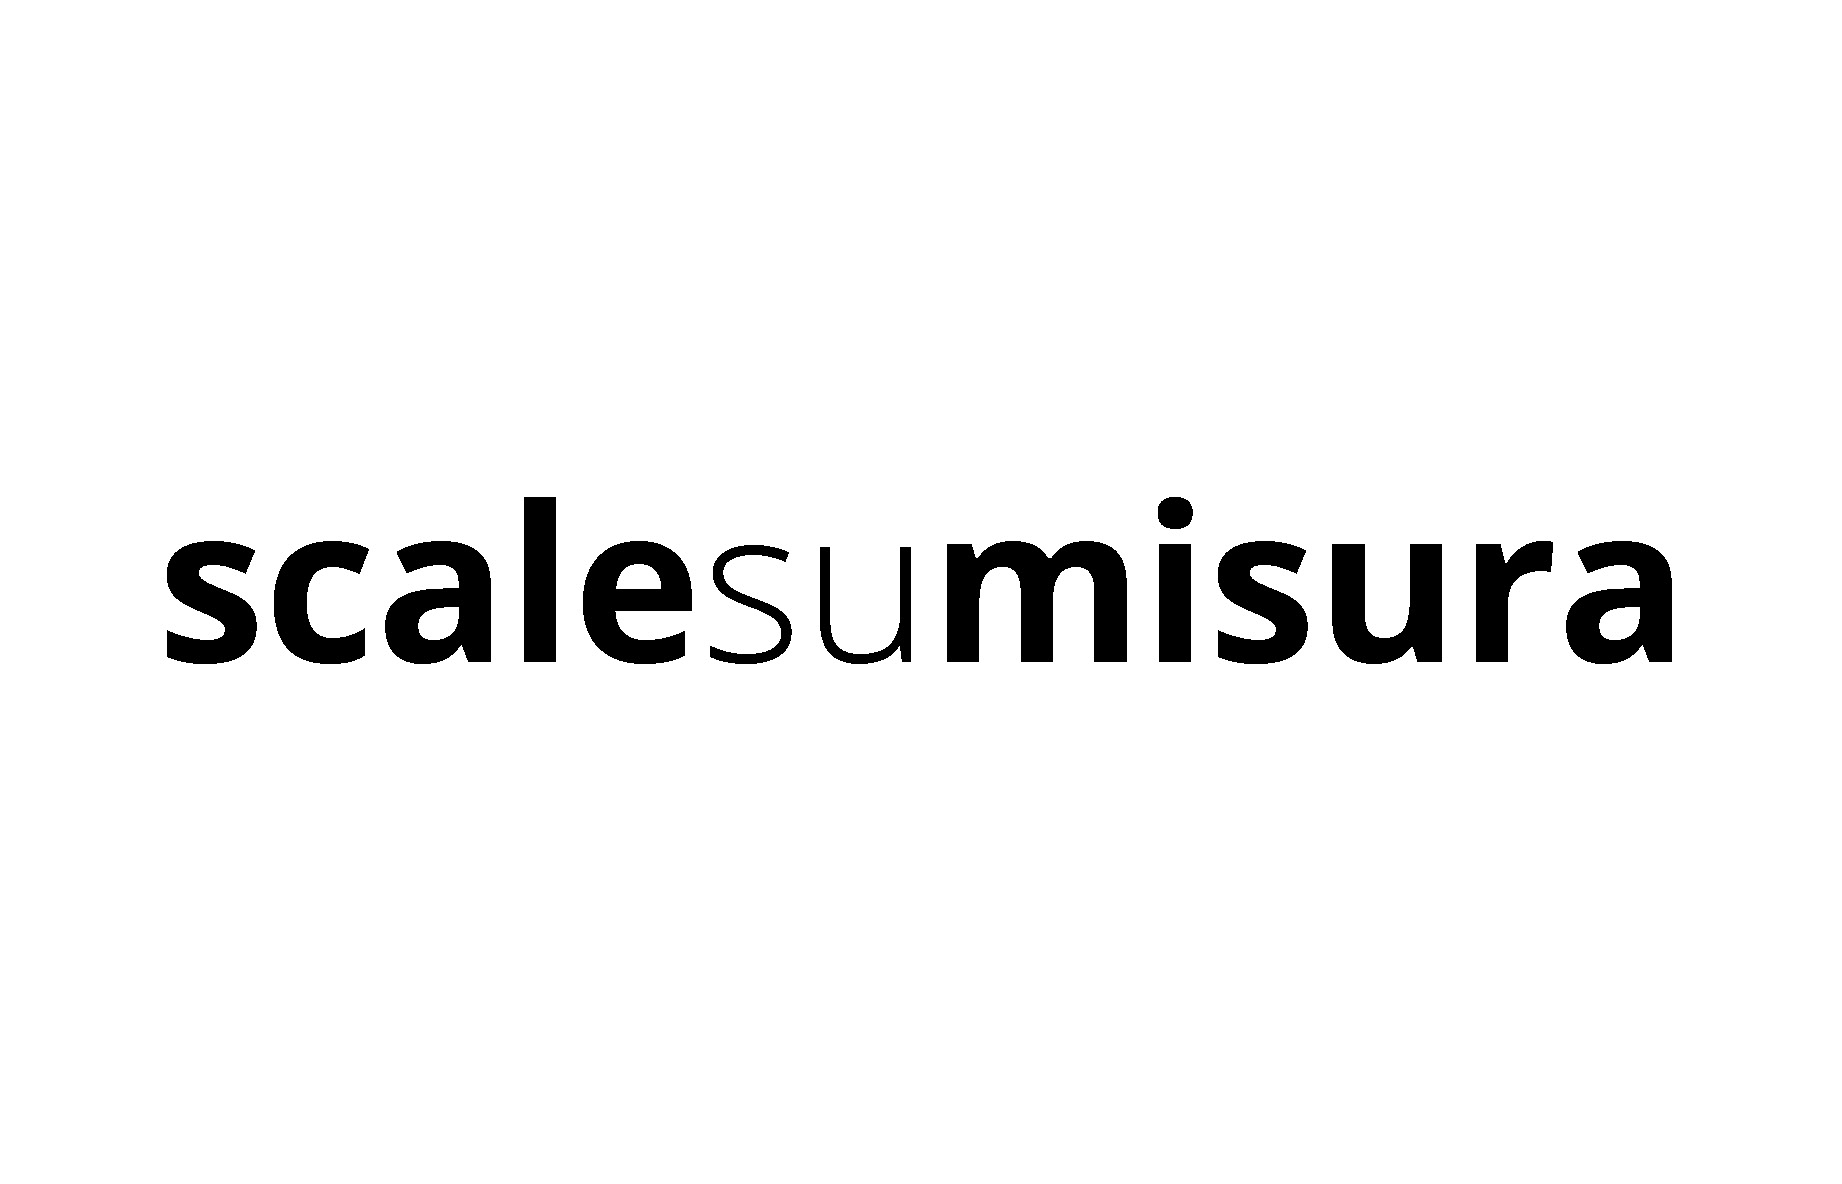 scalesumisura Logo